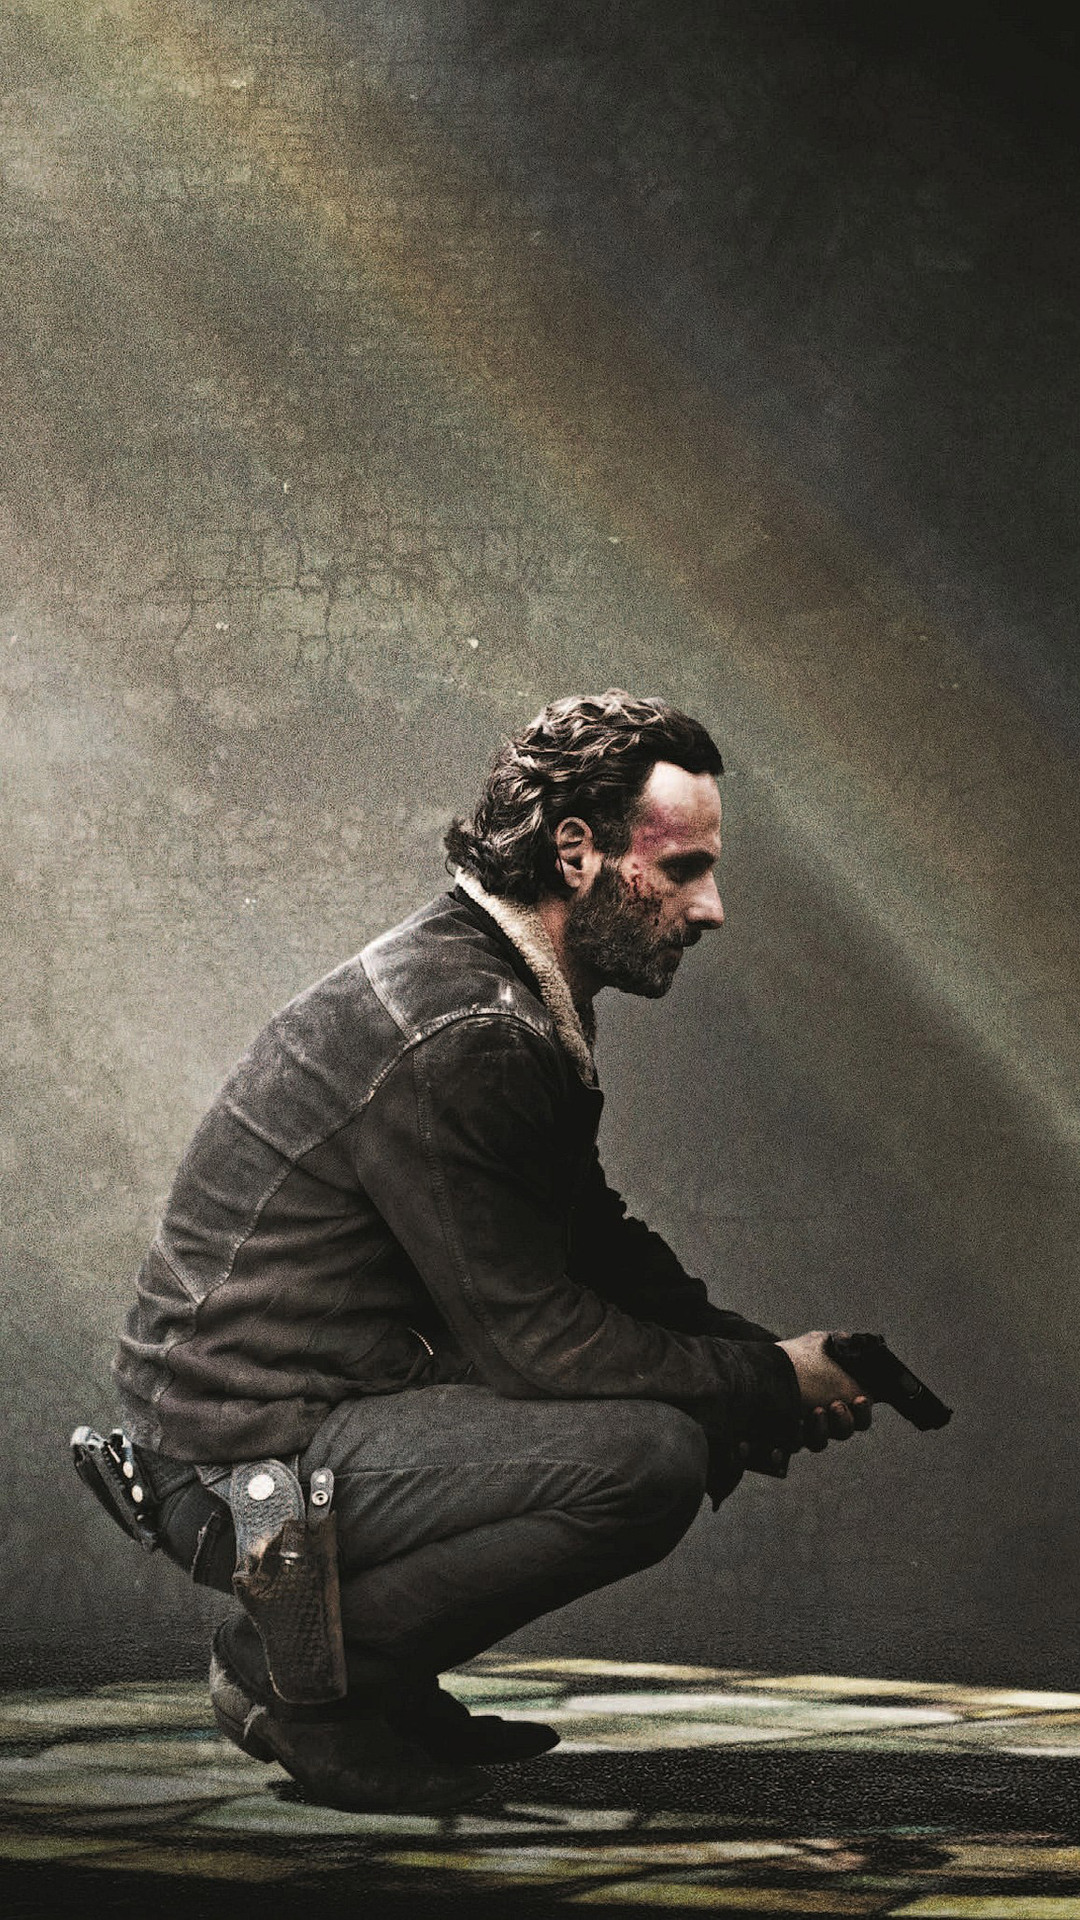 1080x1920 rick grimes the walking dead iphone 7,6s,6 plus, pixel xl